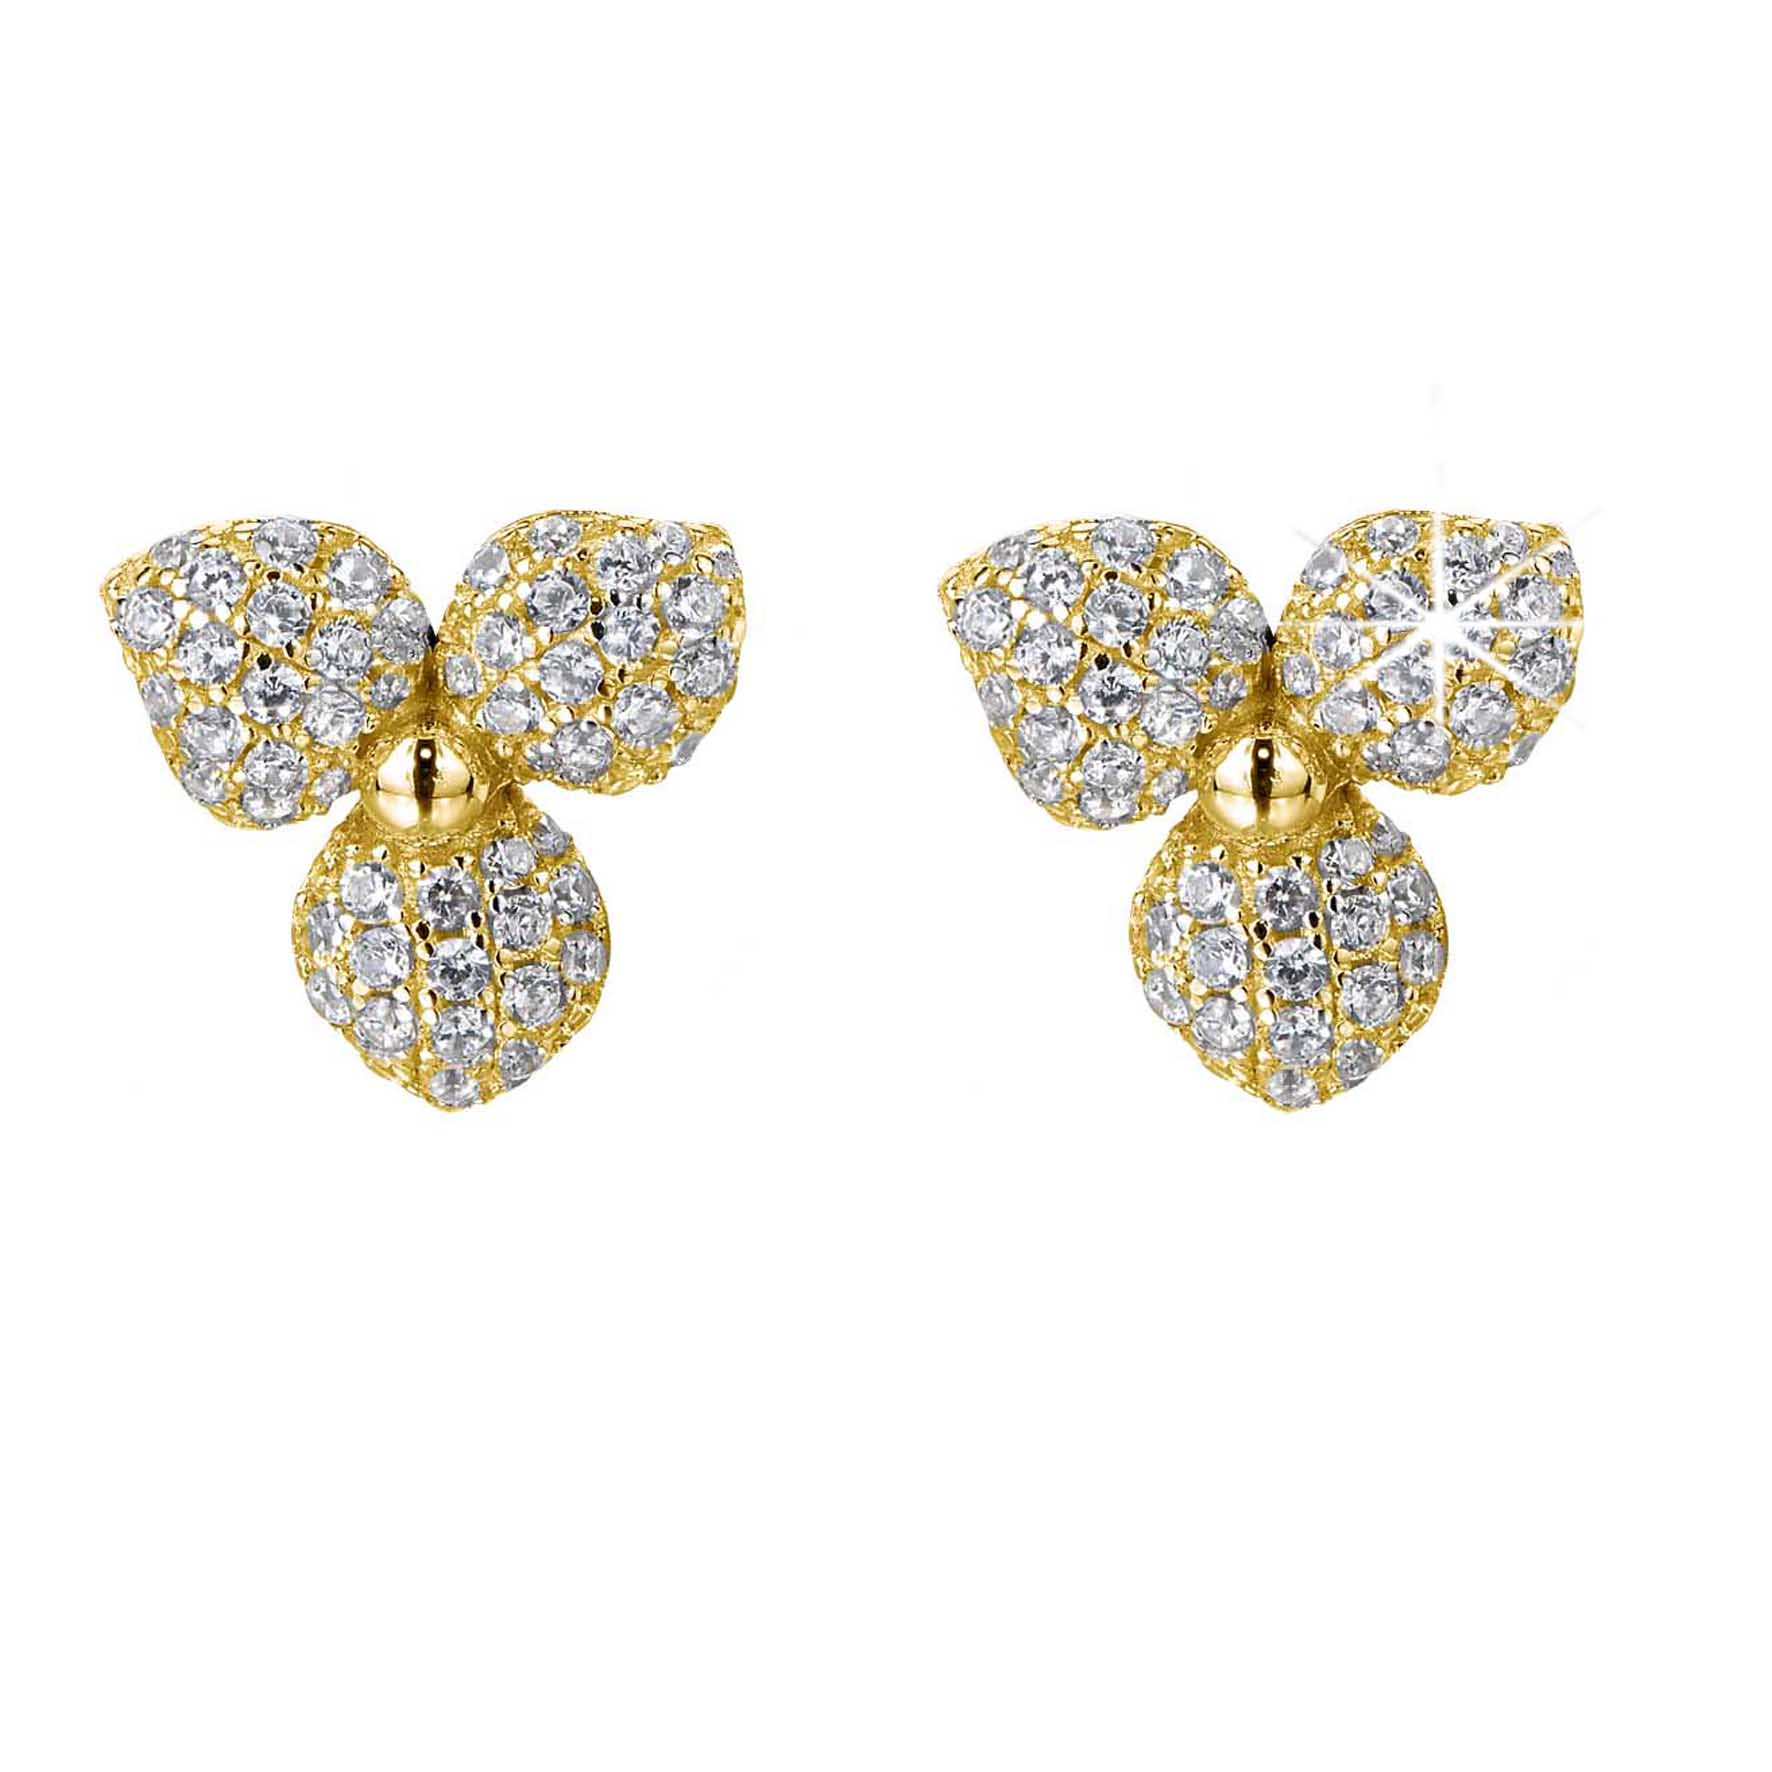 Desert Flowers large pave stud earrings, yellow, gold-plated sterling silver